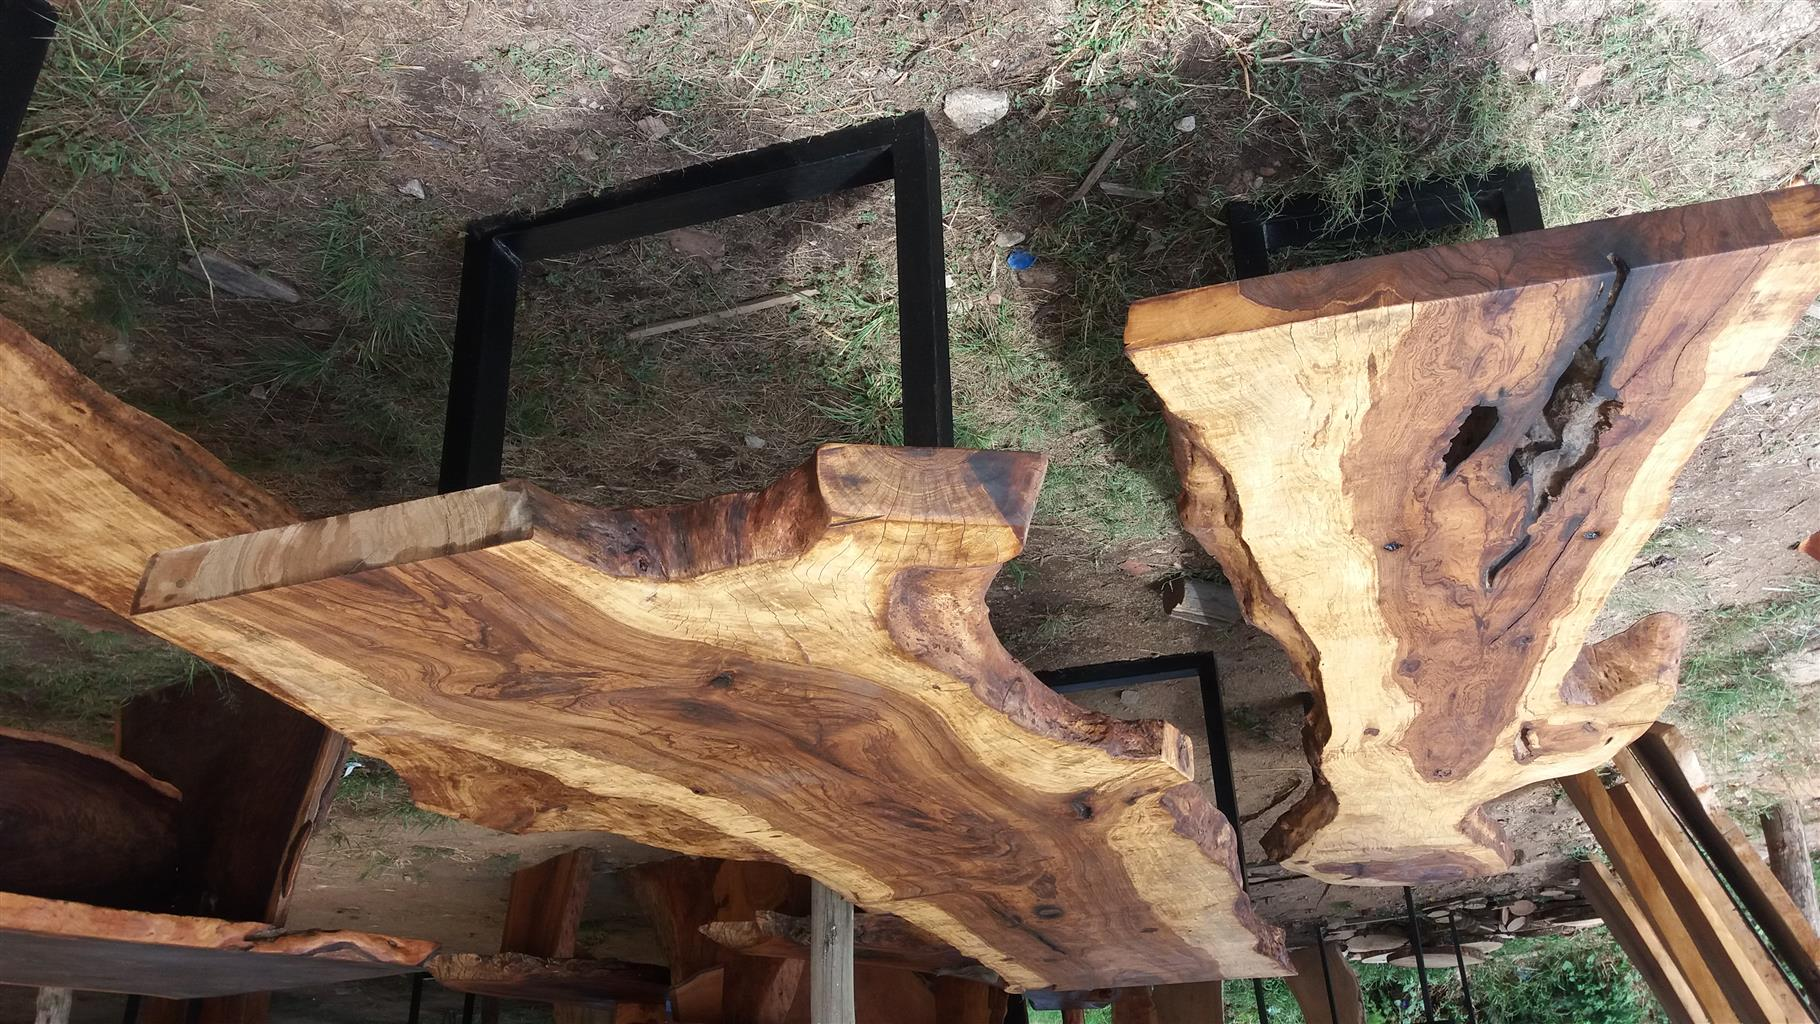 wooden slabs and solid wood furniture